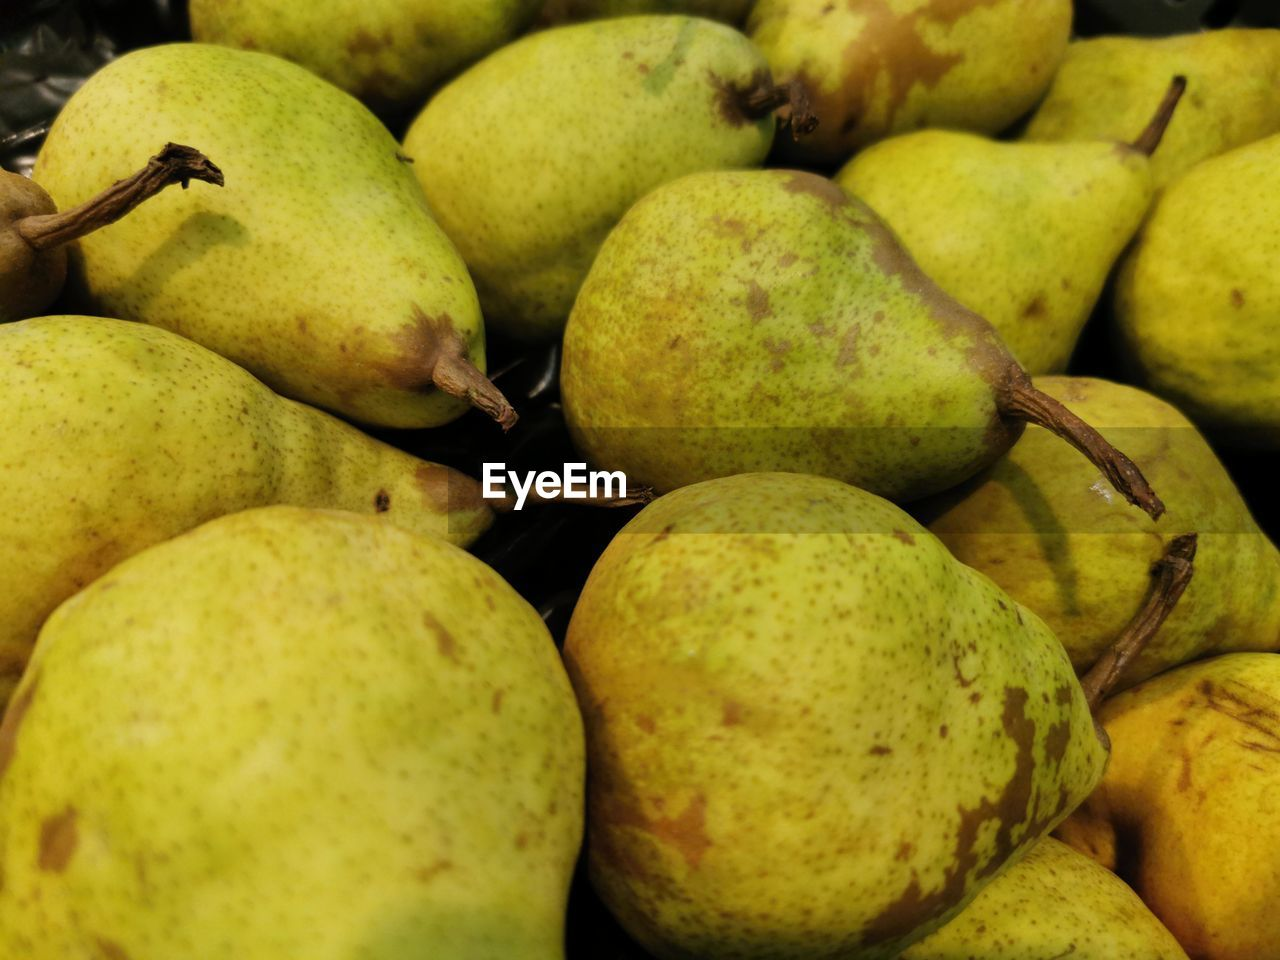 healthy eating, food and drink, food, fruit, wellbeing, freshness, green color, market, retail, pear, full frame, no people, close-up, market stall, large group of objects, abundance, for sale, backgrounds, still life, ripe, organic